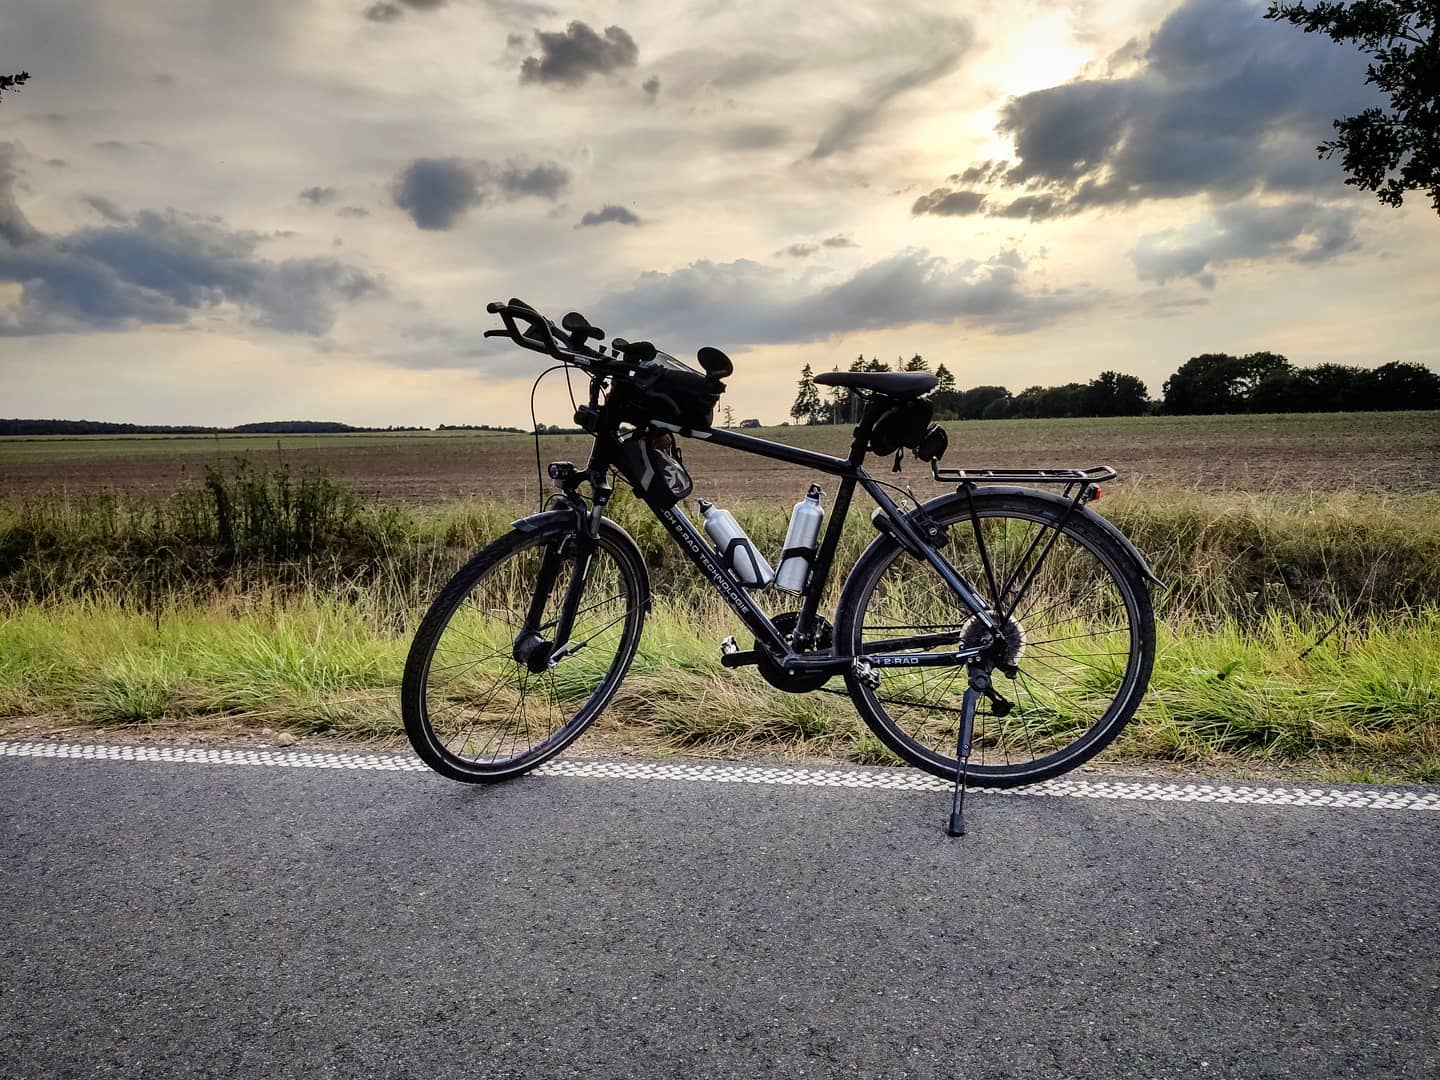 Ride 49 - from Ratzeburg (Partner Bicycle Store) to Seedorf - 19 August 20